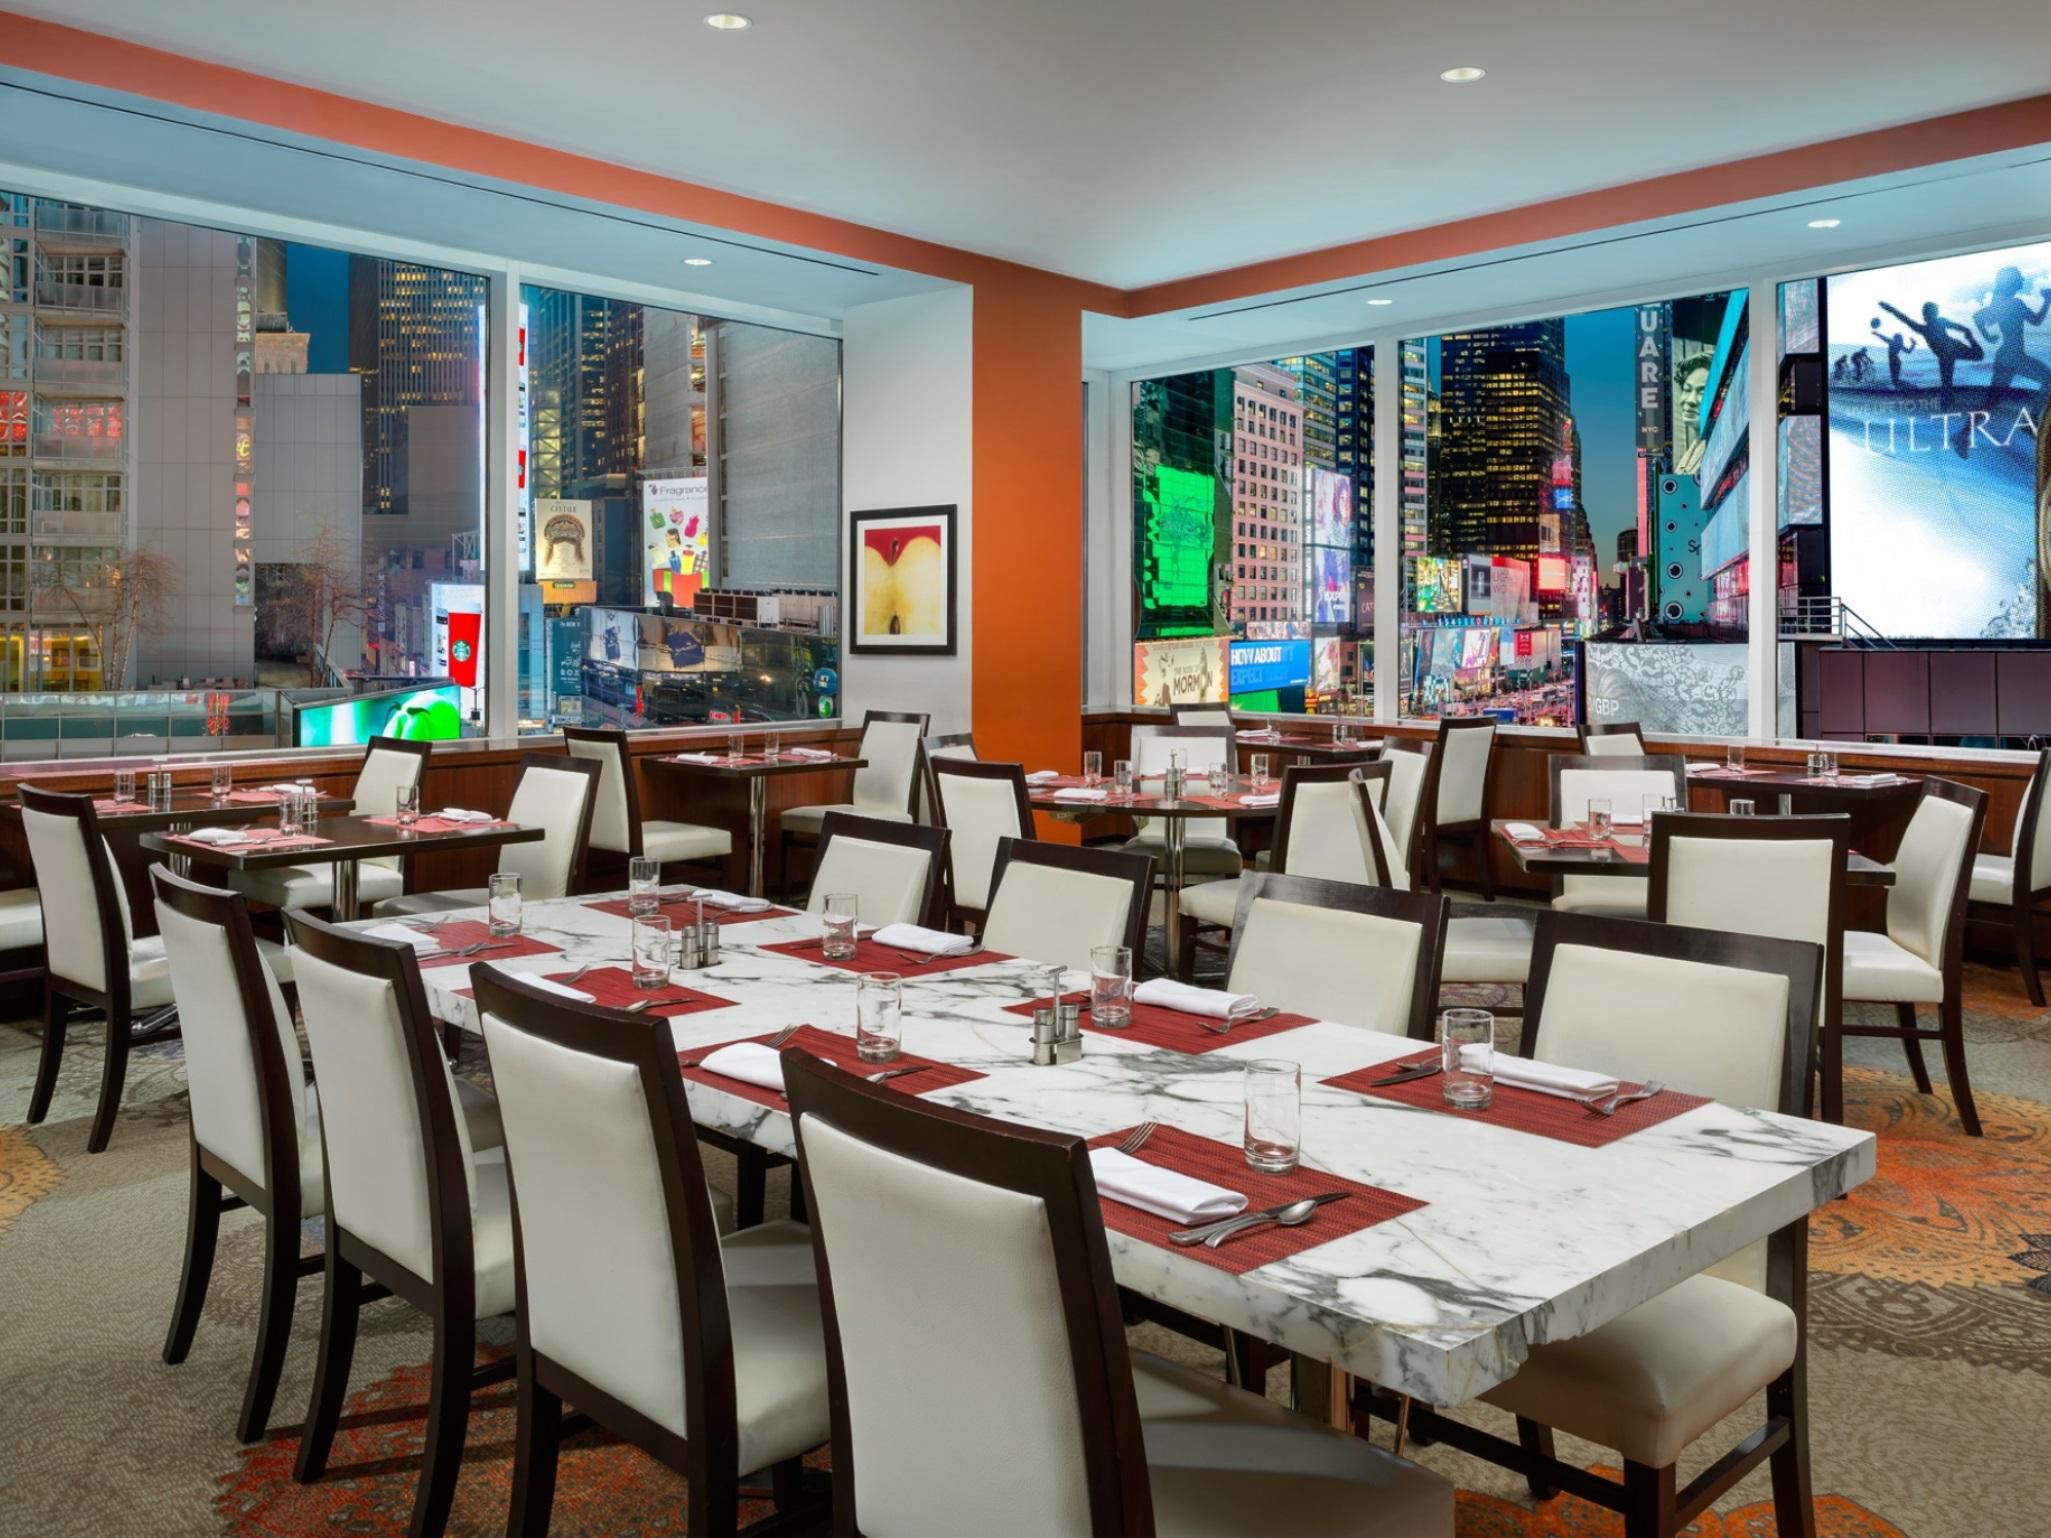 times square hotel crowne plaza times square manhattan ny